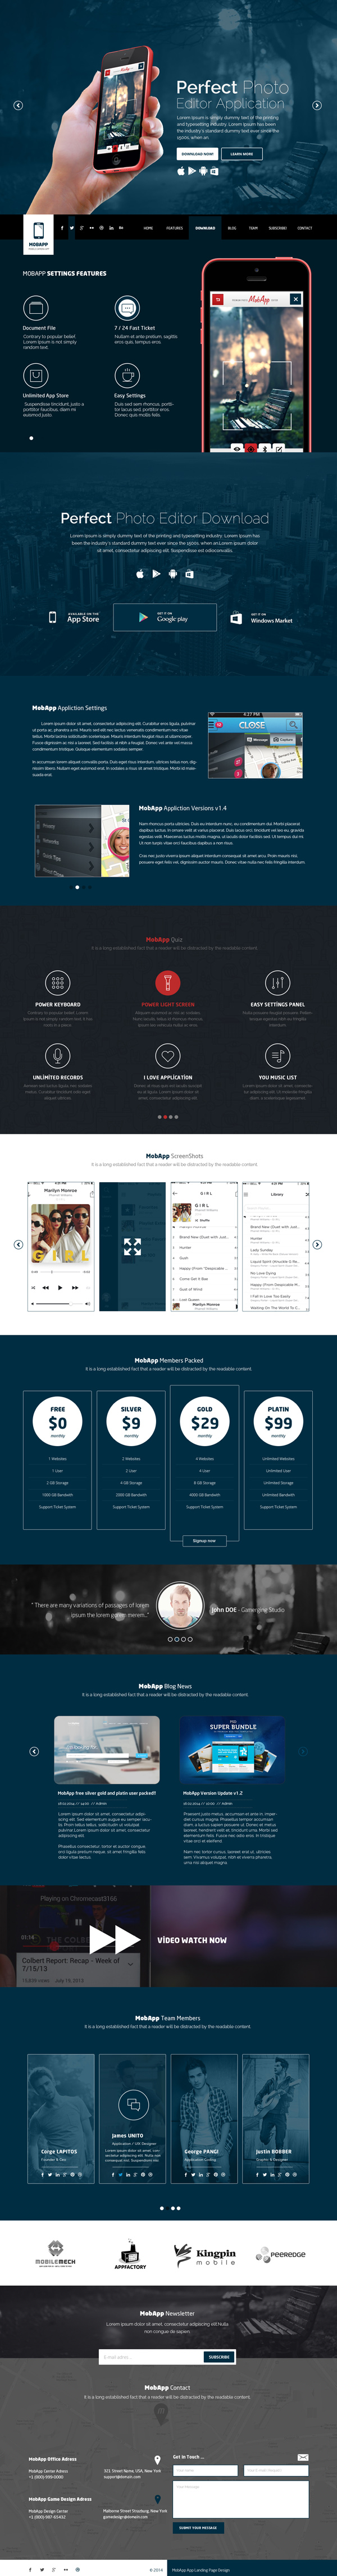 MobApp - One Page App HTML5 Landing Page